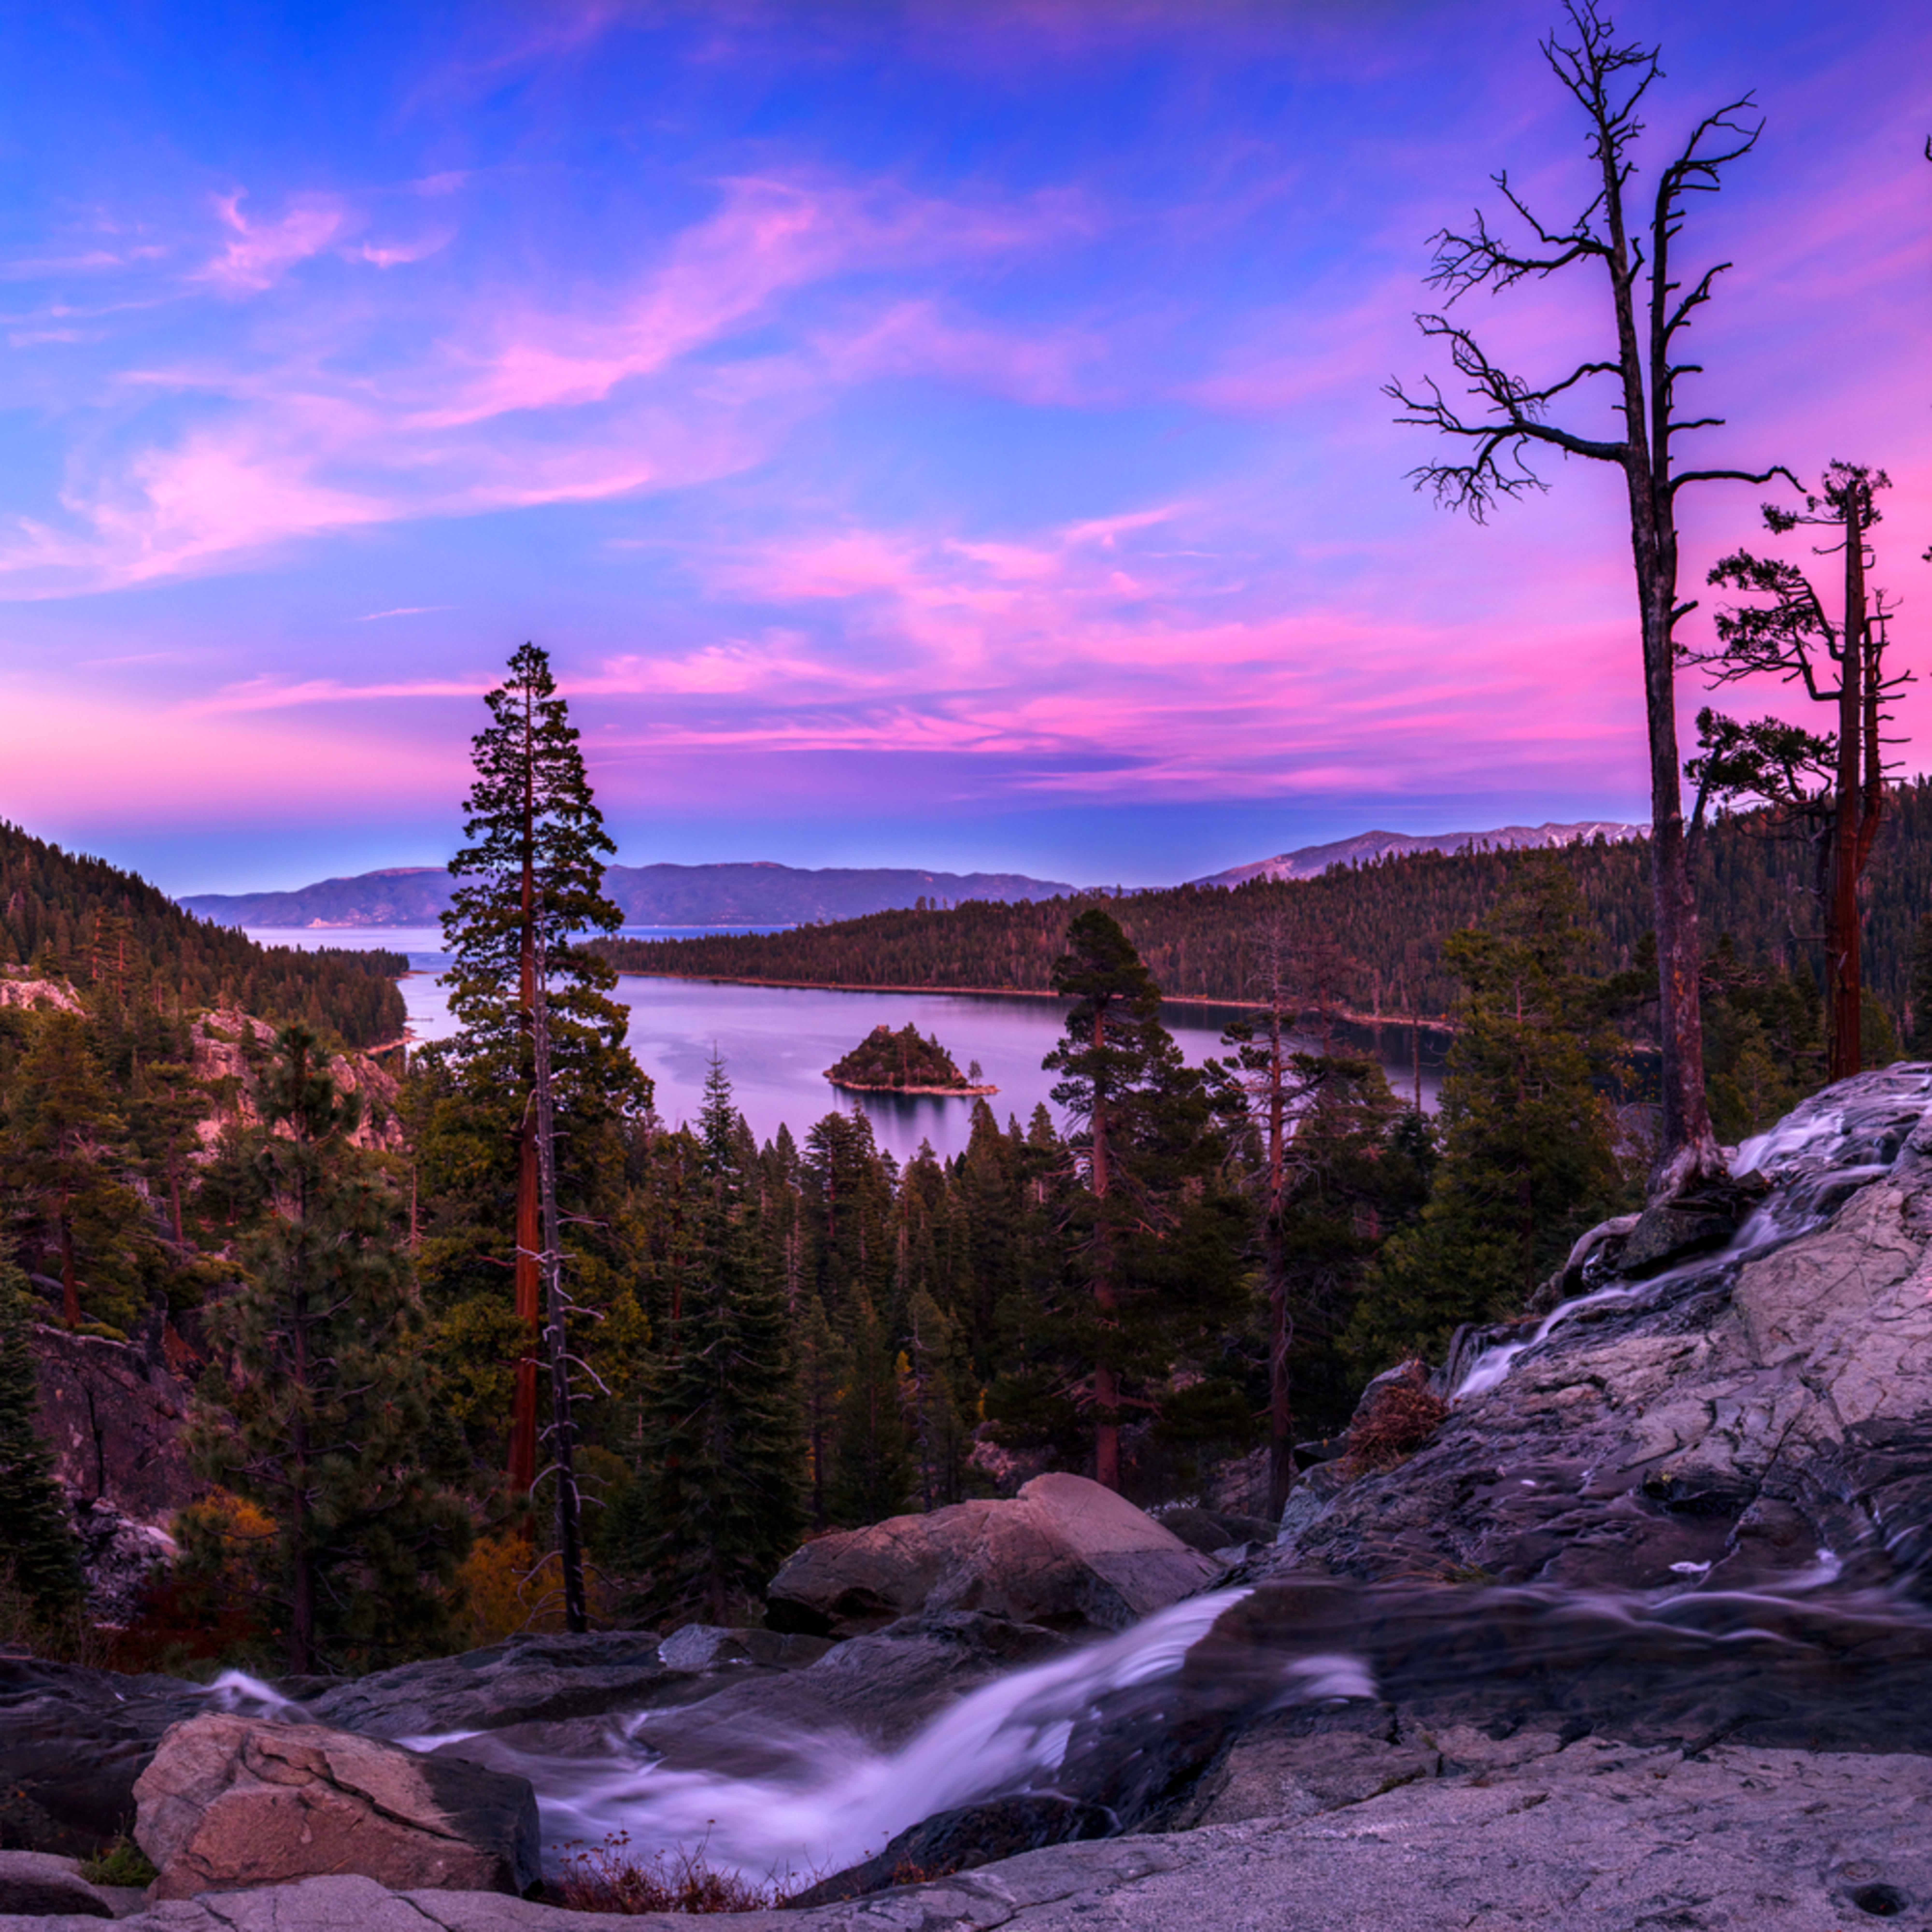 Emerald bay dreaming brmeum